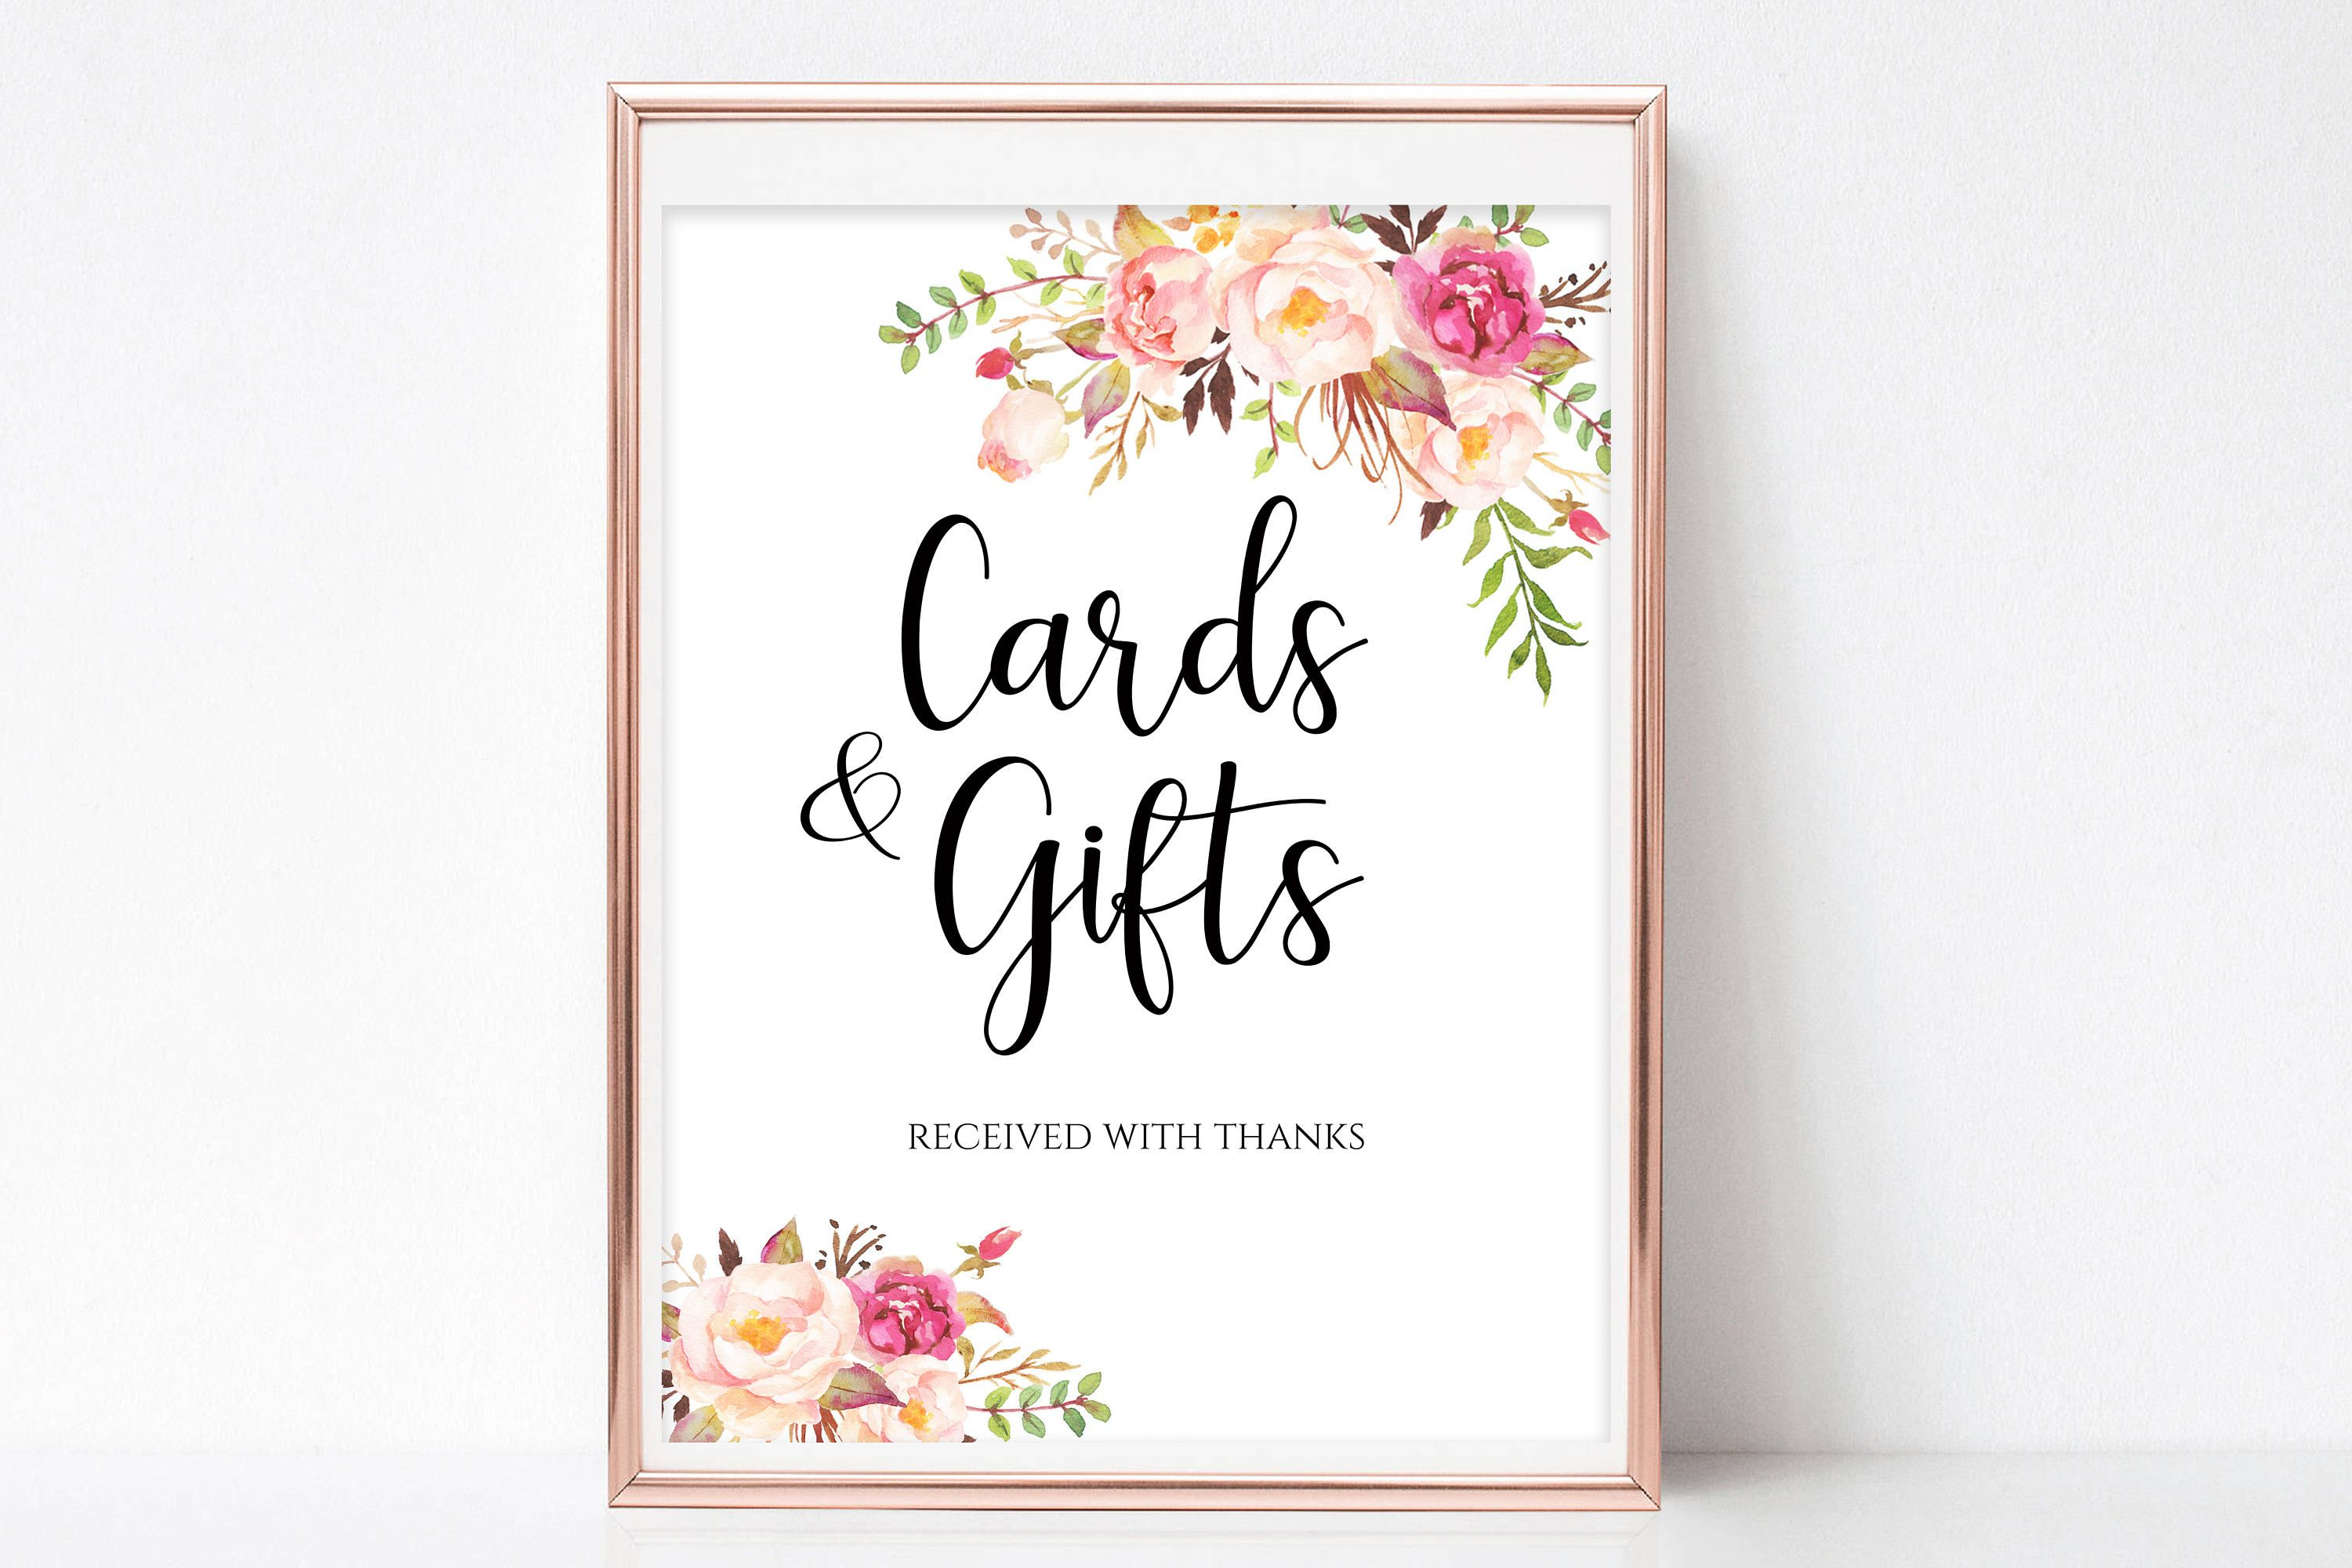 Cards And Gifts Sign Gift Table Sign Cards And Gifts Printable Wedding Sign Template Reception Sign Instant Gift Table Signs Printable Wedding Sign Gifts Sign